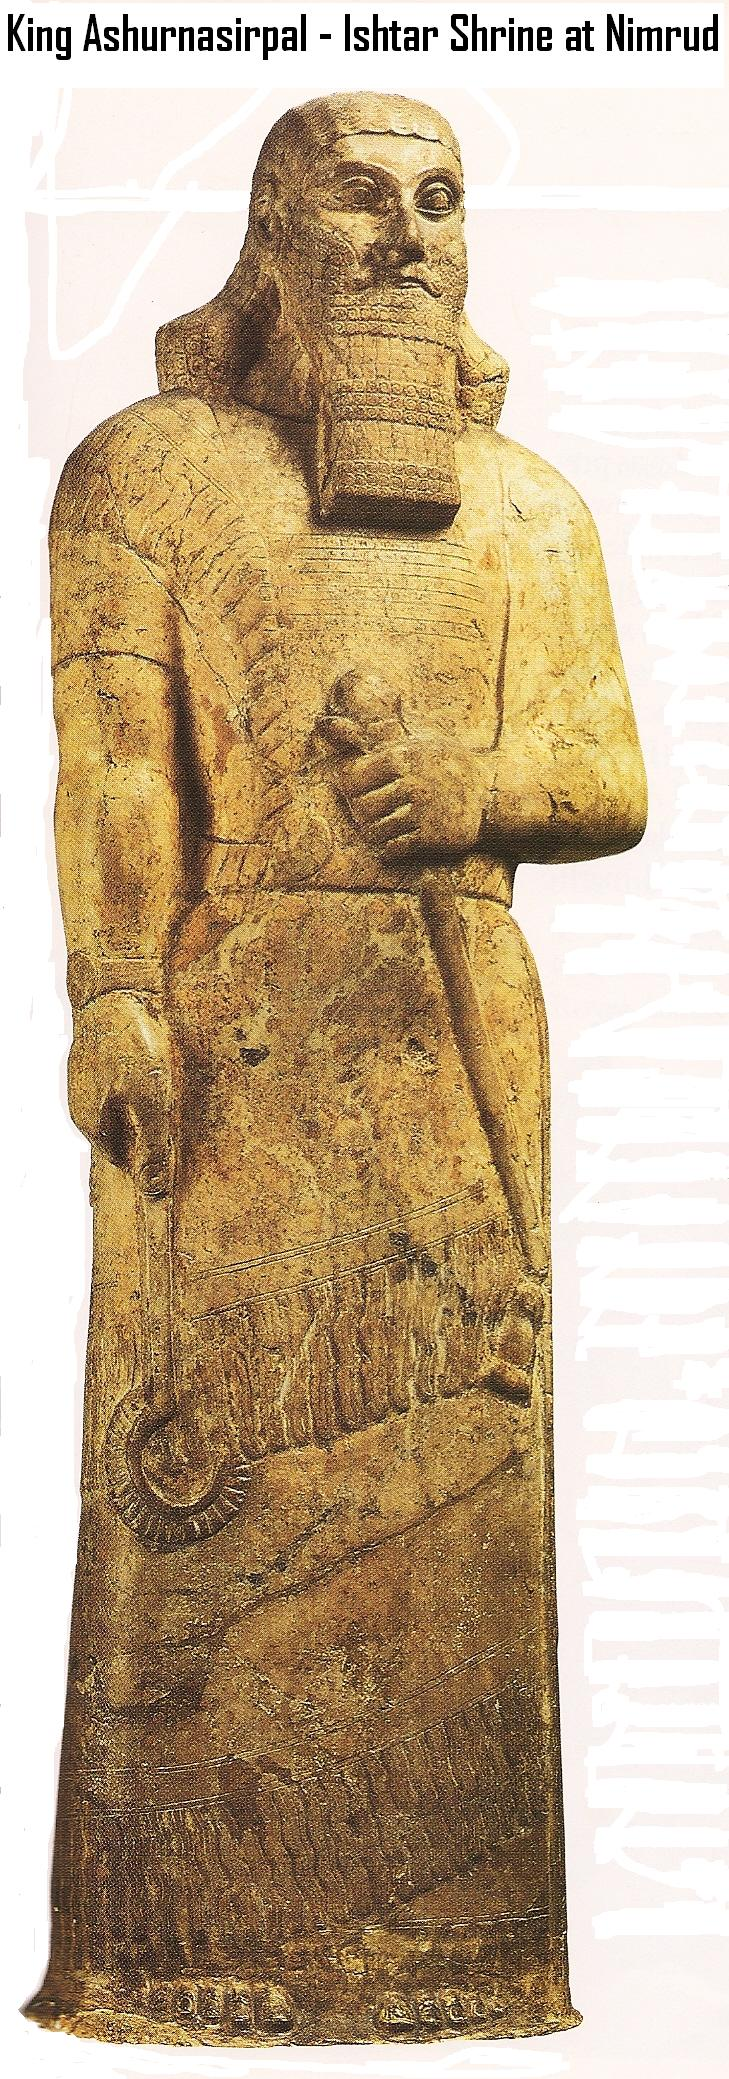 14d - Assyrian artefact of King Ashurnasirpal II of 883 - 859 B.C., as the giant mixed-breed son-kings became popular, they also became the spouse to the Goddess of Love, throughout early history, Inanna espoused dozens & dozens of giant mixed-breed kings, Ex: she & King Shu-Suen produced the god-like child called Shara - Cupid to the Romans, SEE SPOUSE-KINGS ON INANNA'S PAGE